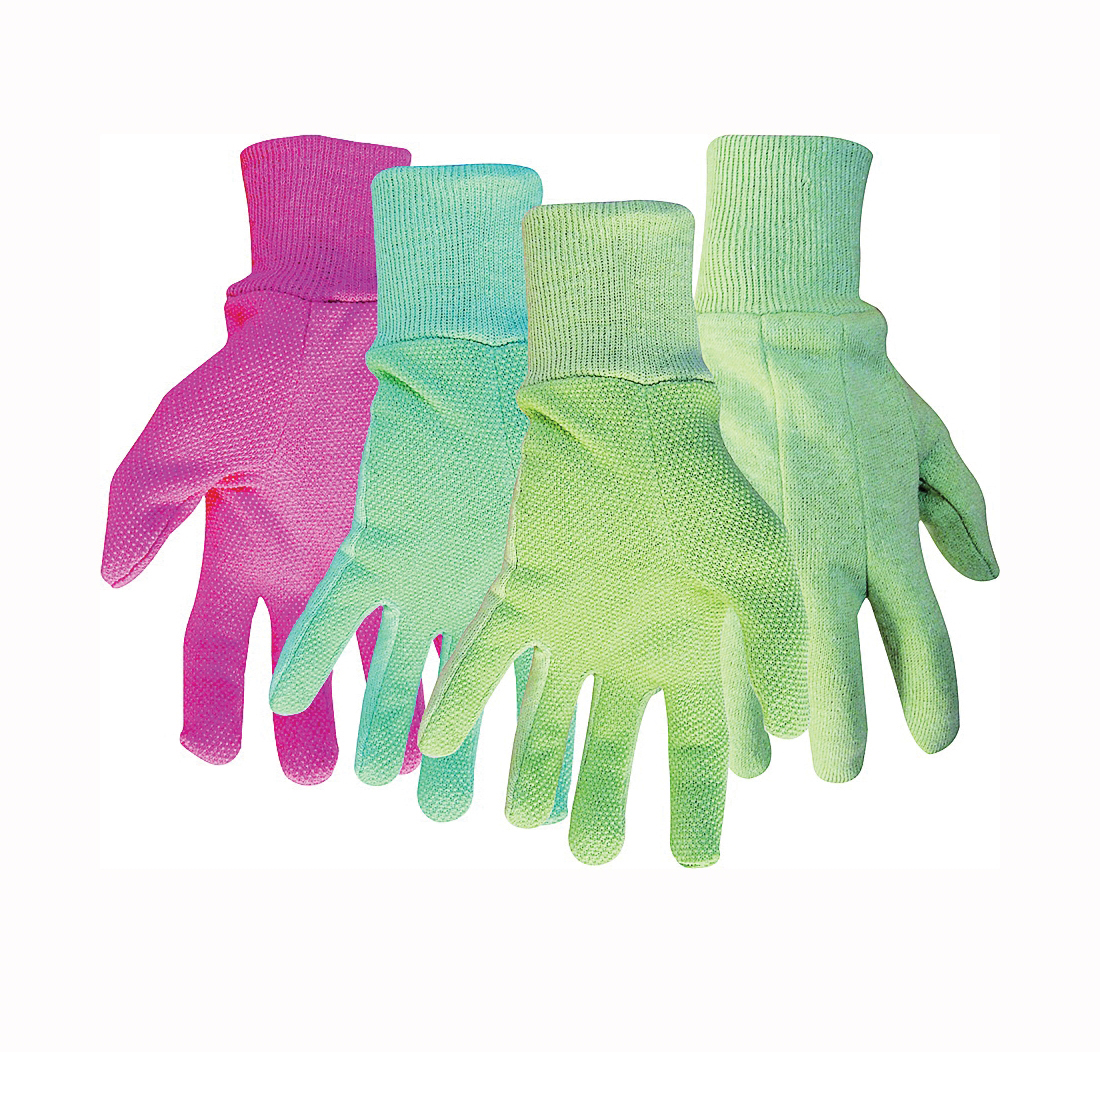 Picture of BOSS 738 General-Purpose Protective Gloves, Women's, L, Knit Wrist Cuff, Cotton/Polyester, Blue/Green/Pink